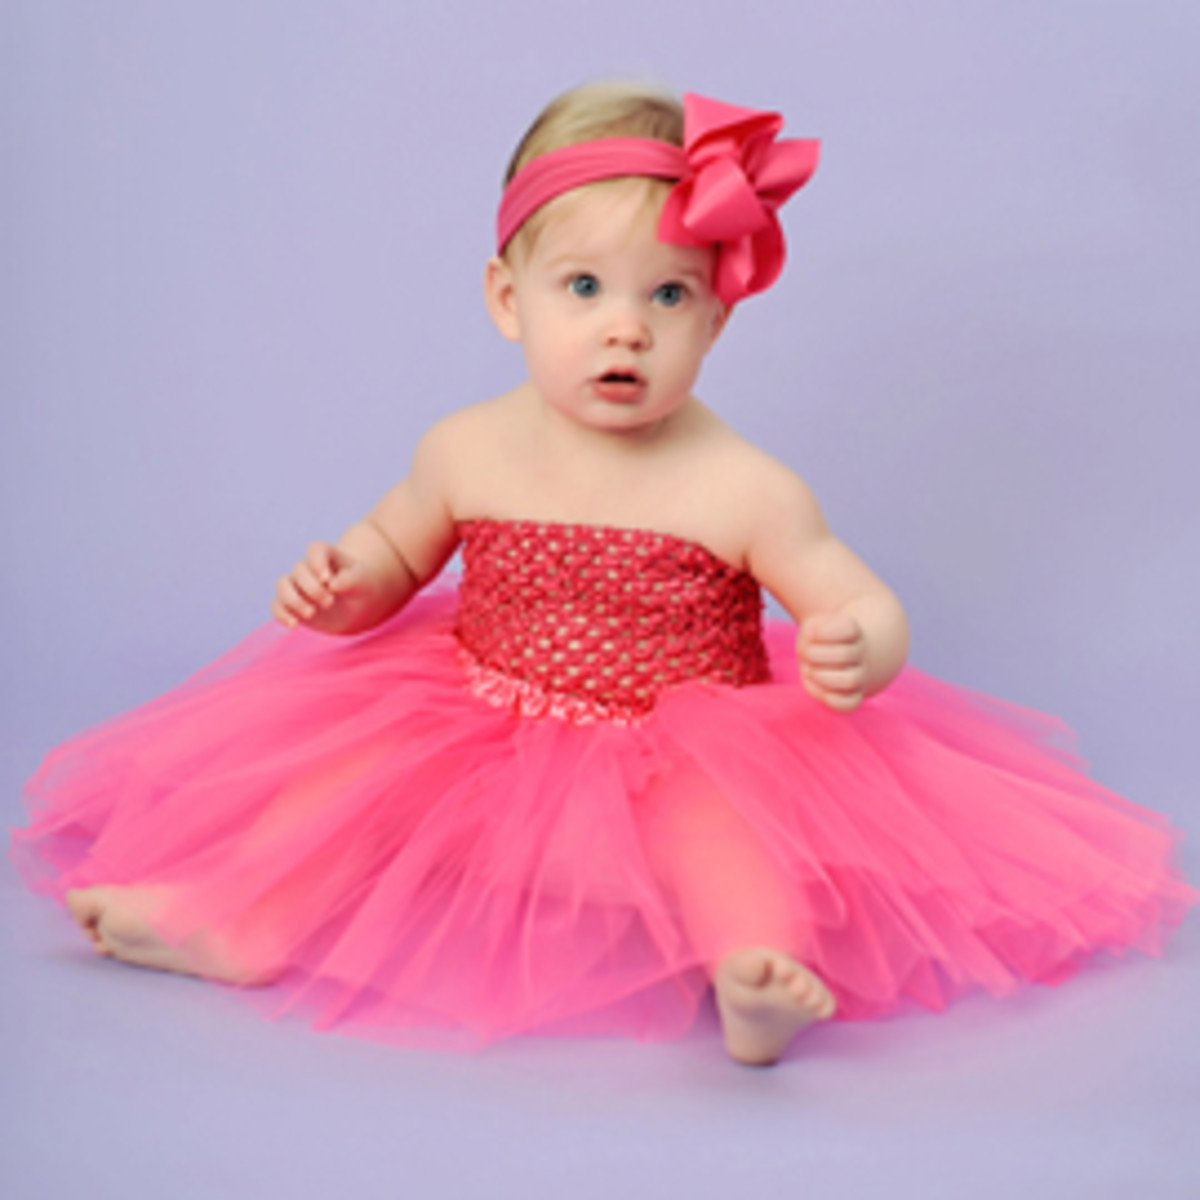 Tutu - How To Make A No-Sew Tutu Skirt For Your Little Girl